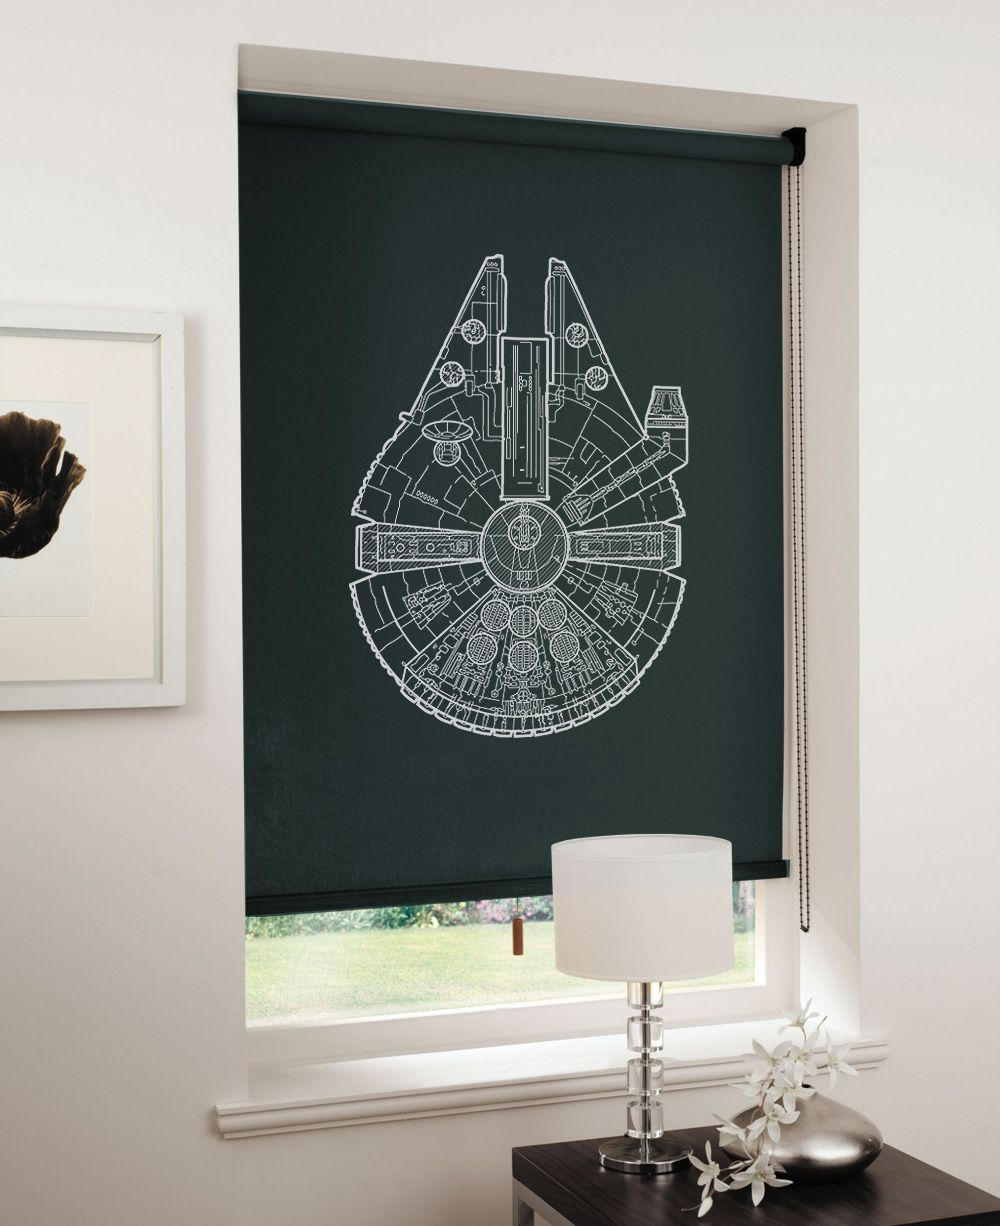 Bedroom spaceships thanks to blueprints on blinds   Das Schlafzimmer ...